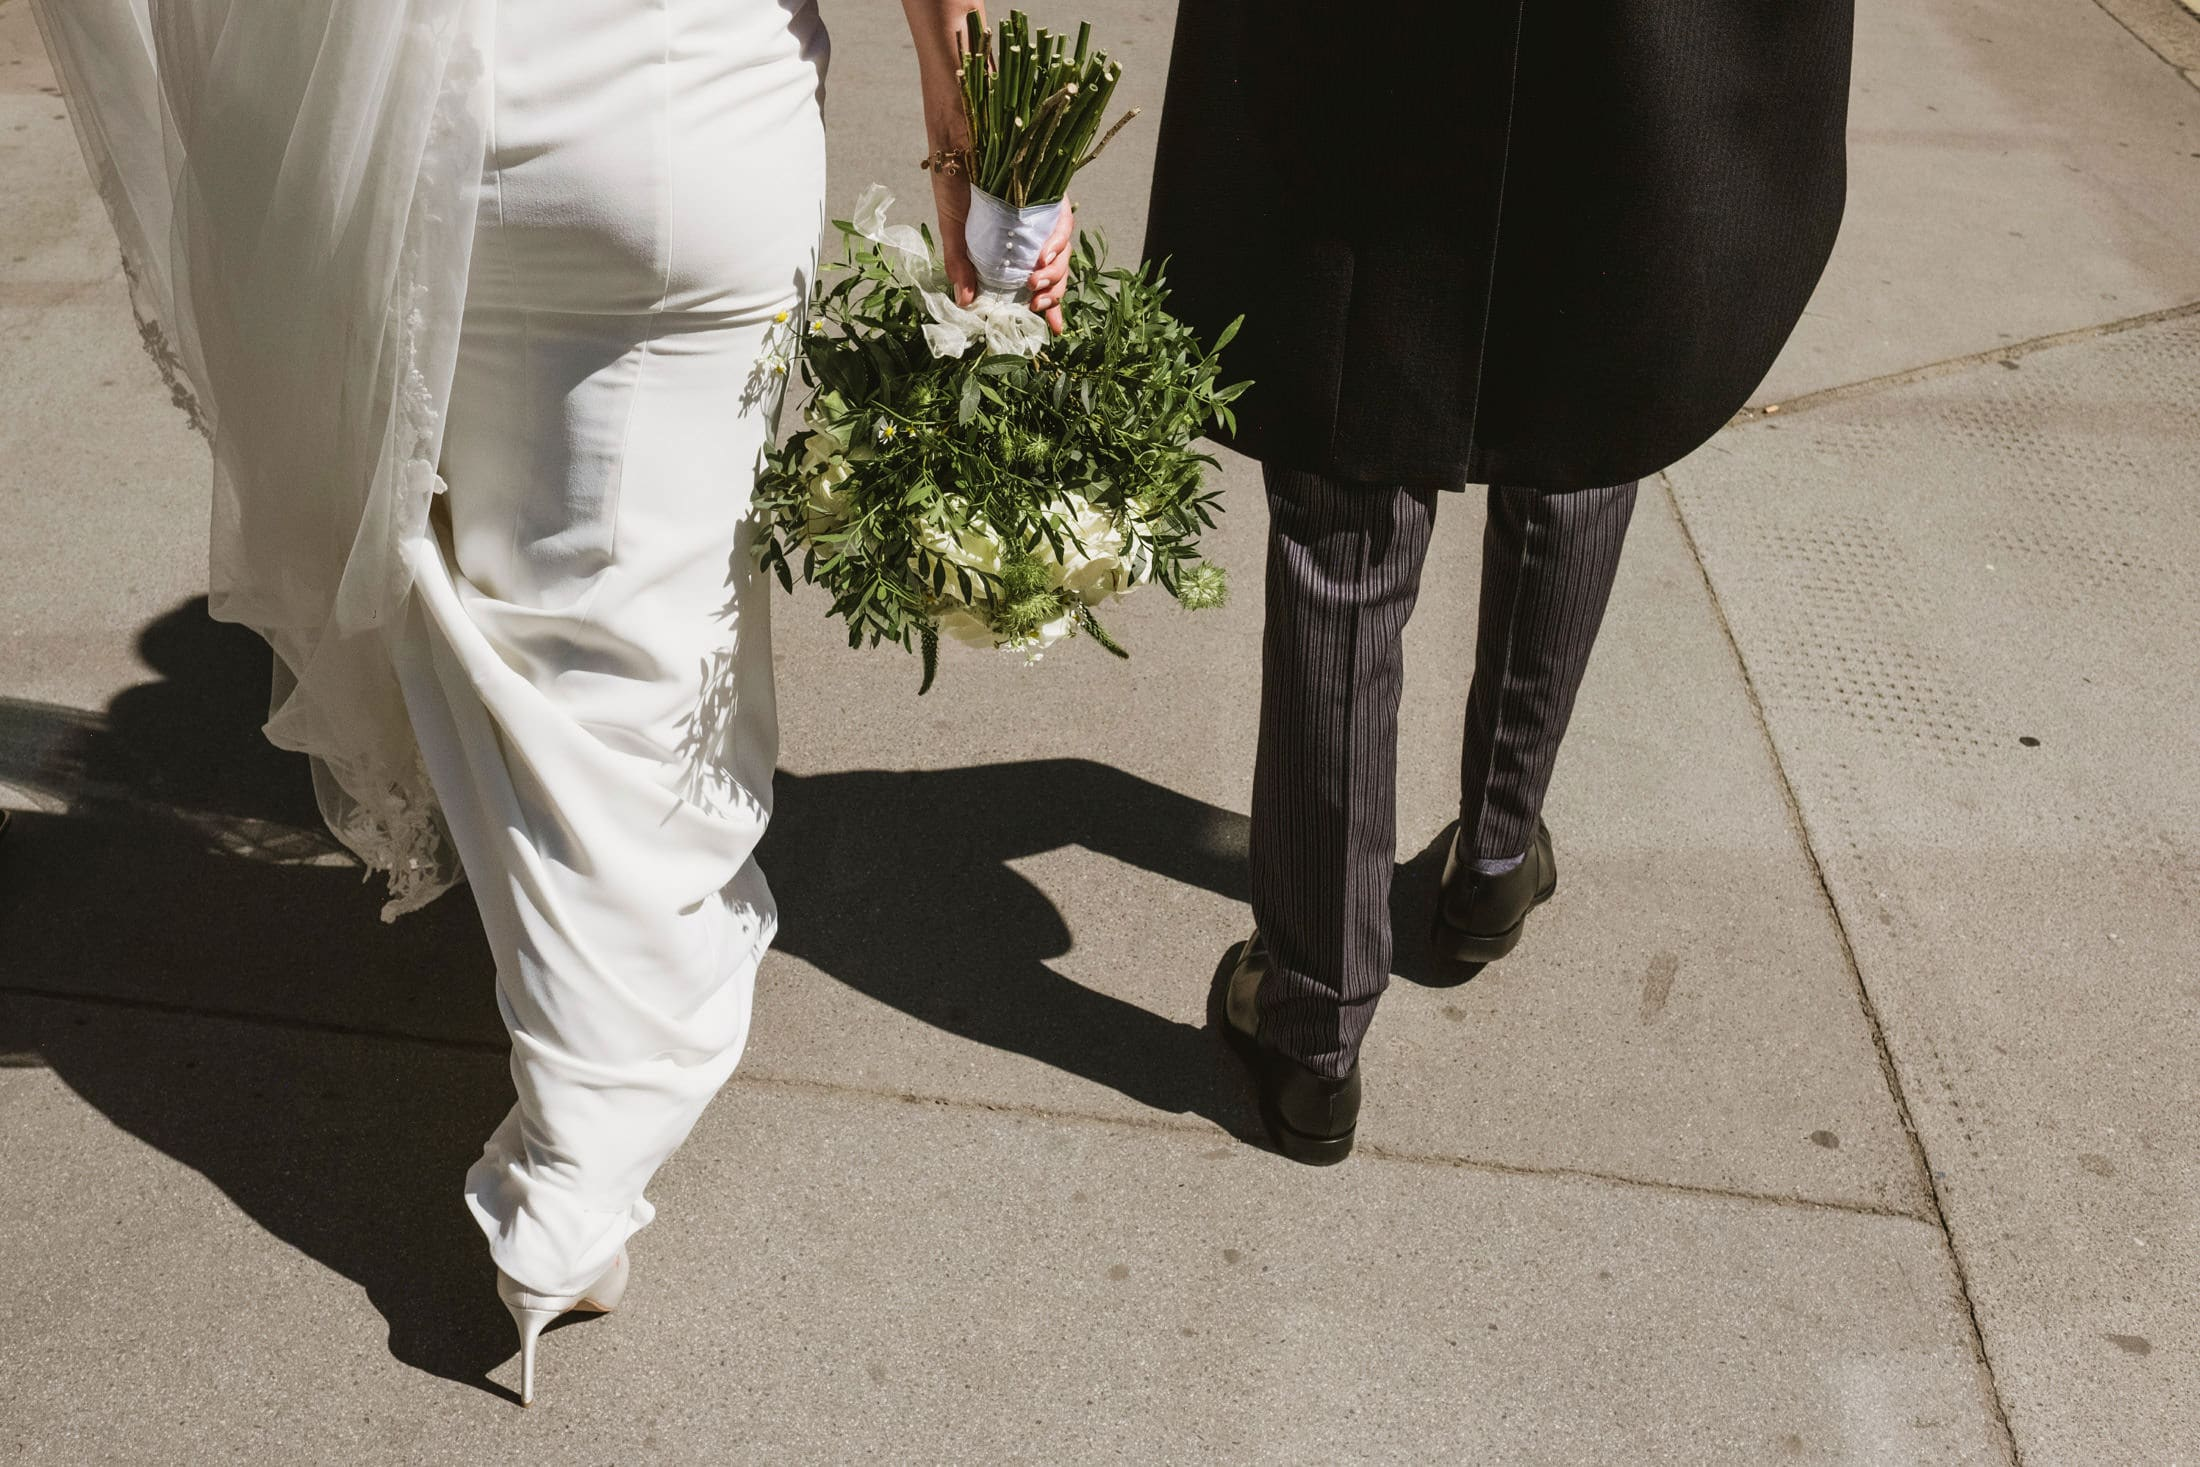 Street style documentary wedding photograph captured in London. A bride and groom's legs photographed from behind as they walk down a London street. Between them the bride holds her bouquet upside down.